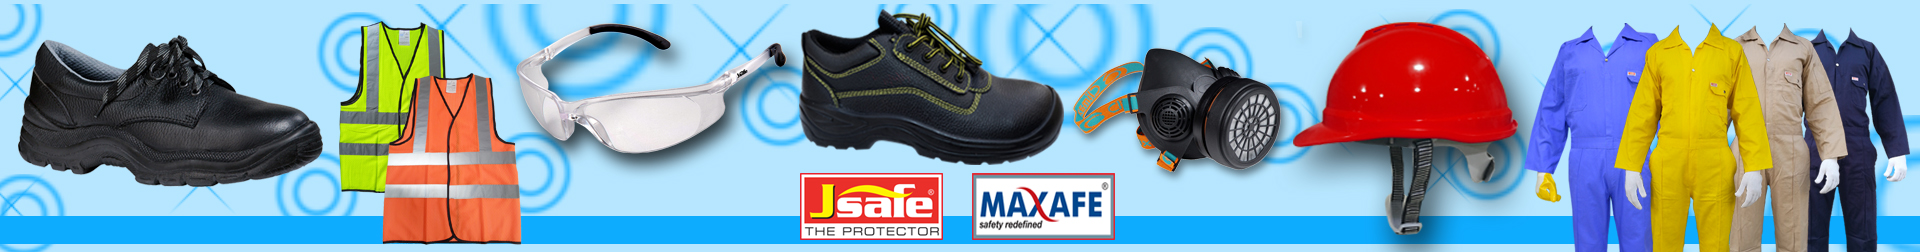 Safety Footwear | Industrial Safety Shoes| Industrial Safety